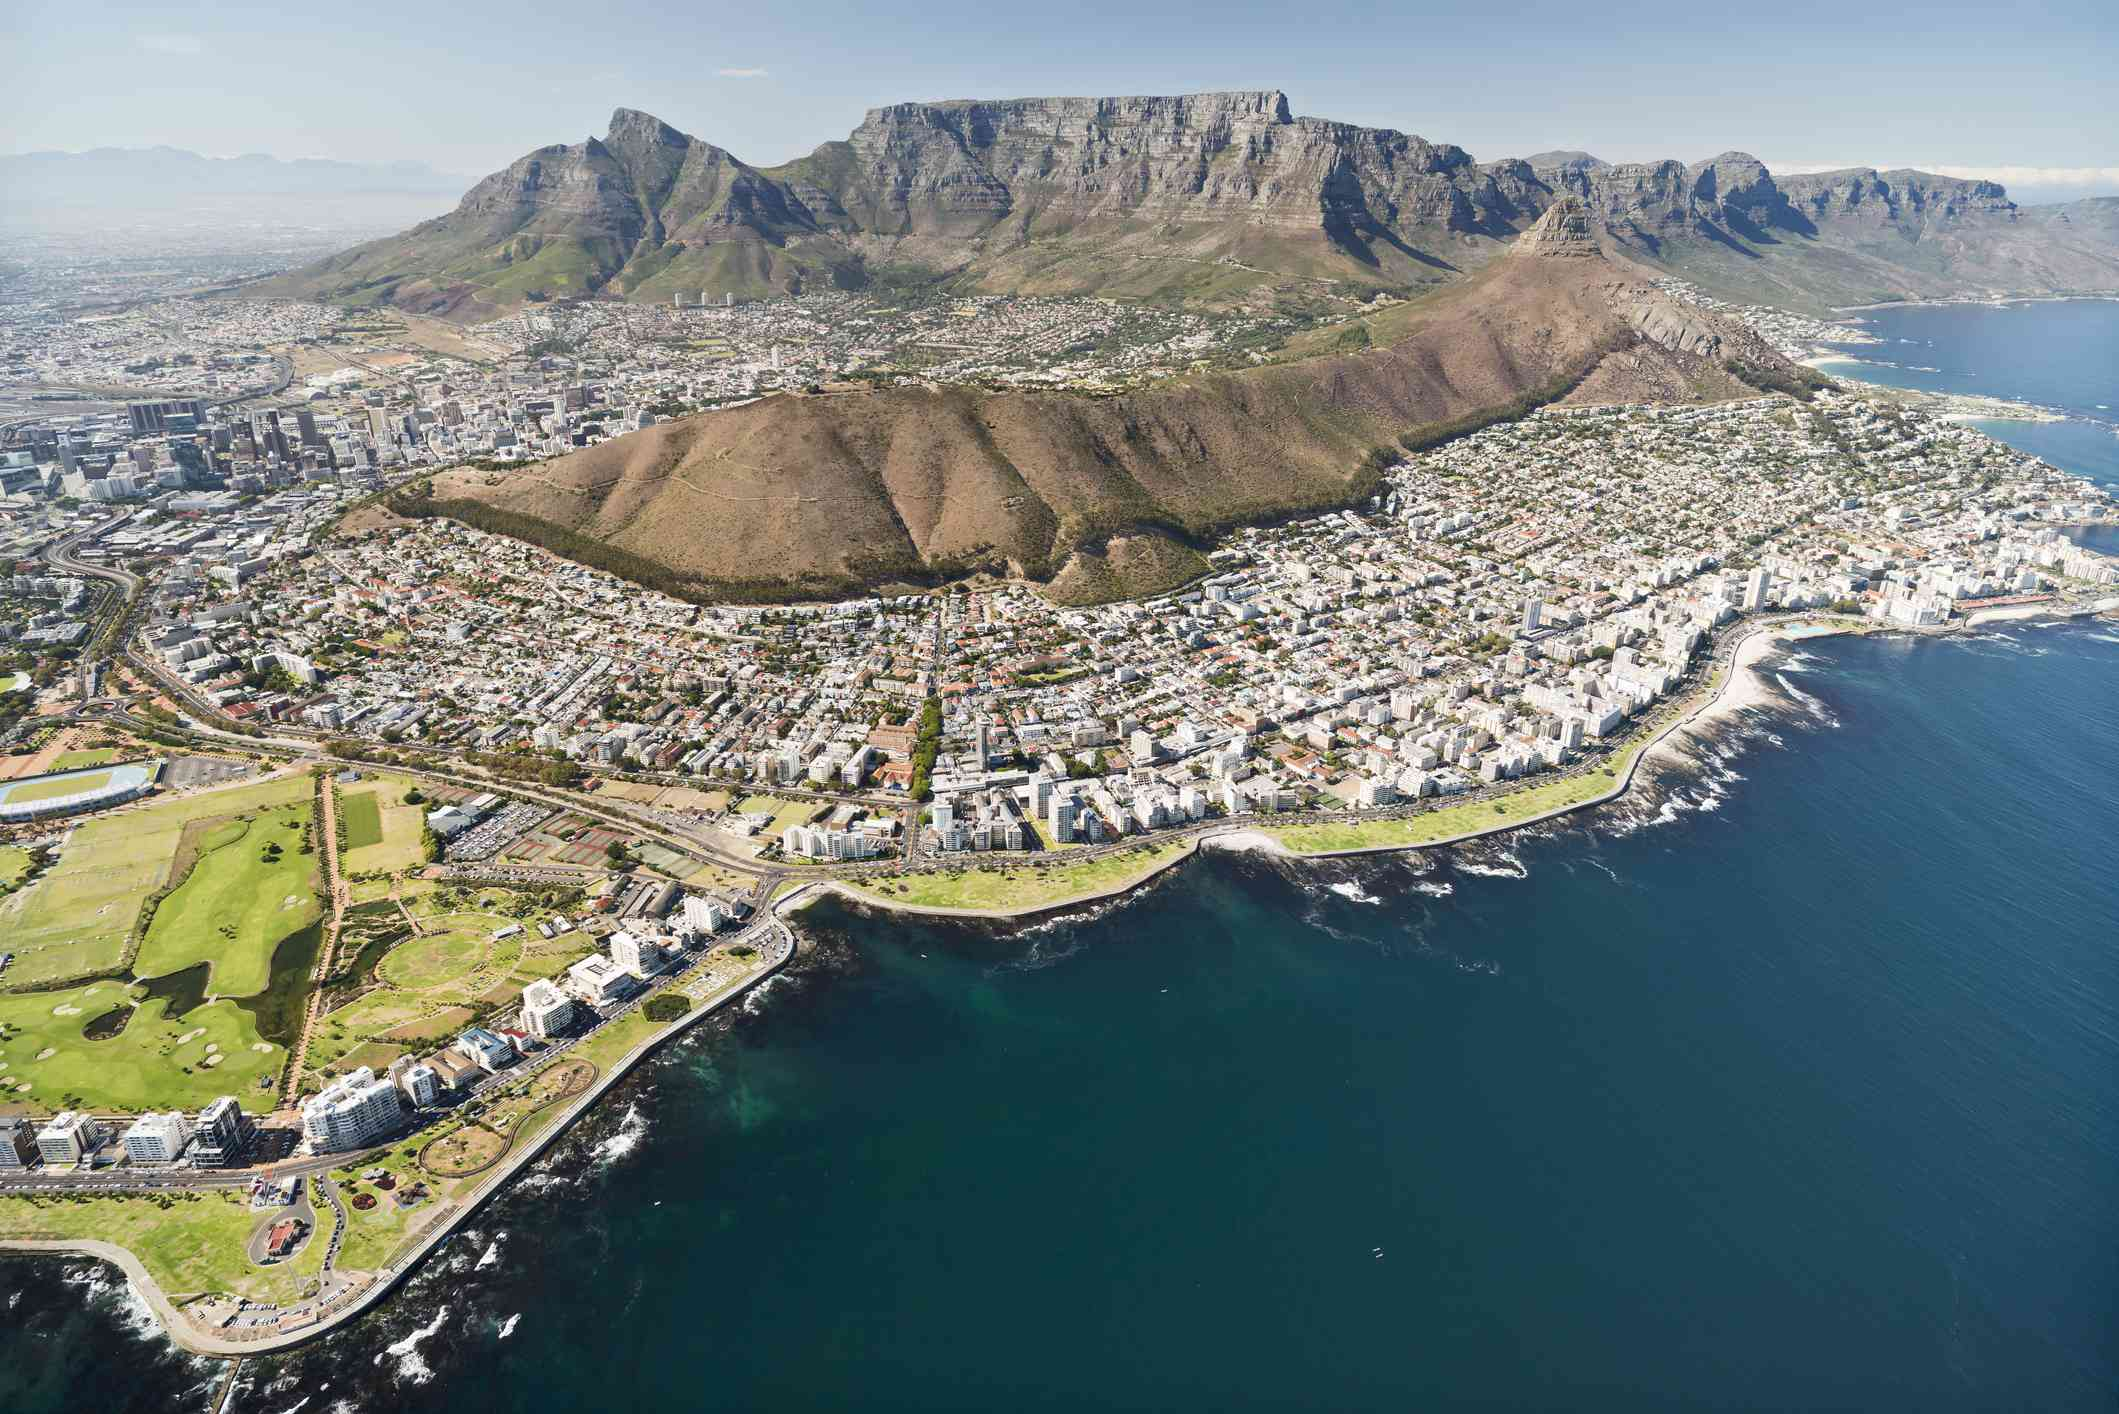 Aerial view of Cape Town, South Africa with view of Table Mountain in the distance and blue water in the foreground along the shoreline with light blue sky above